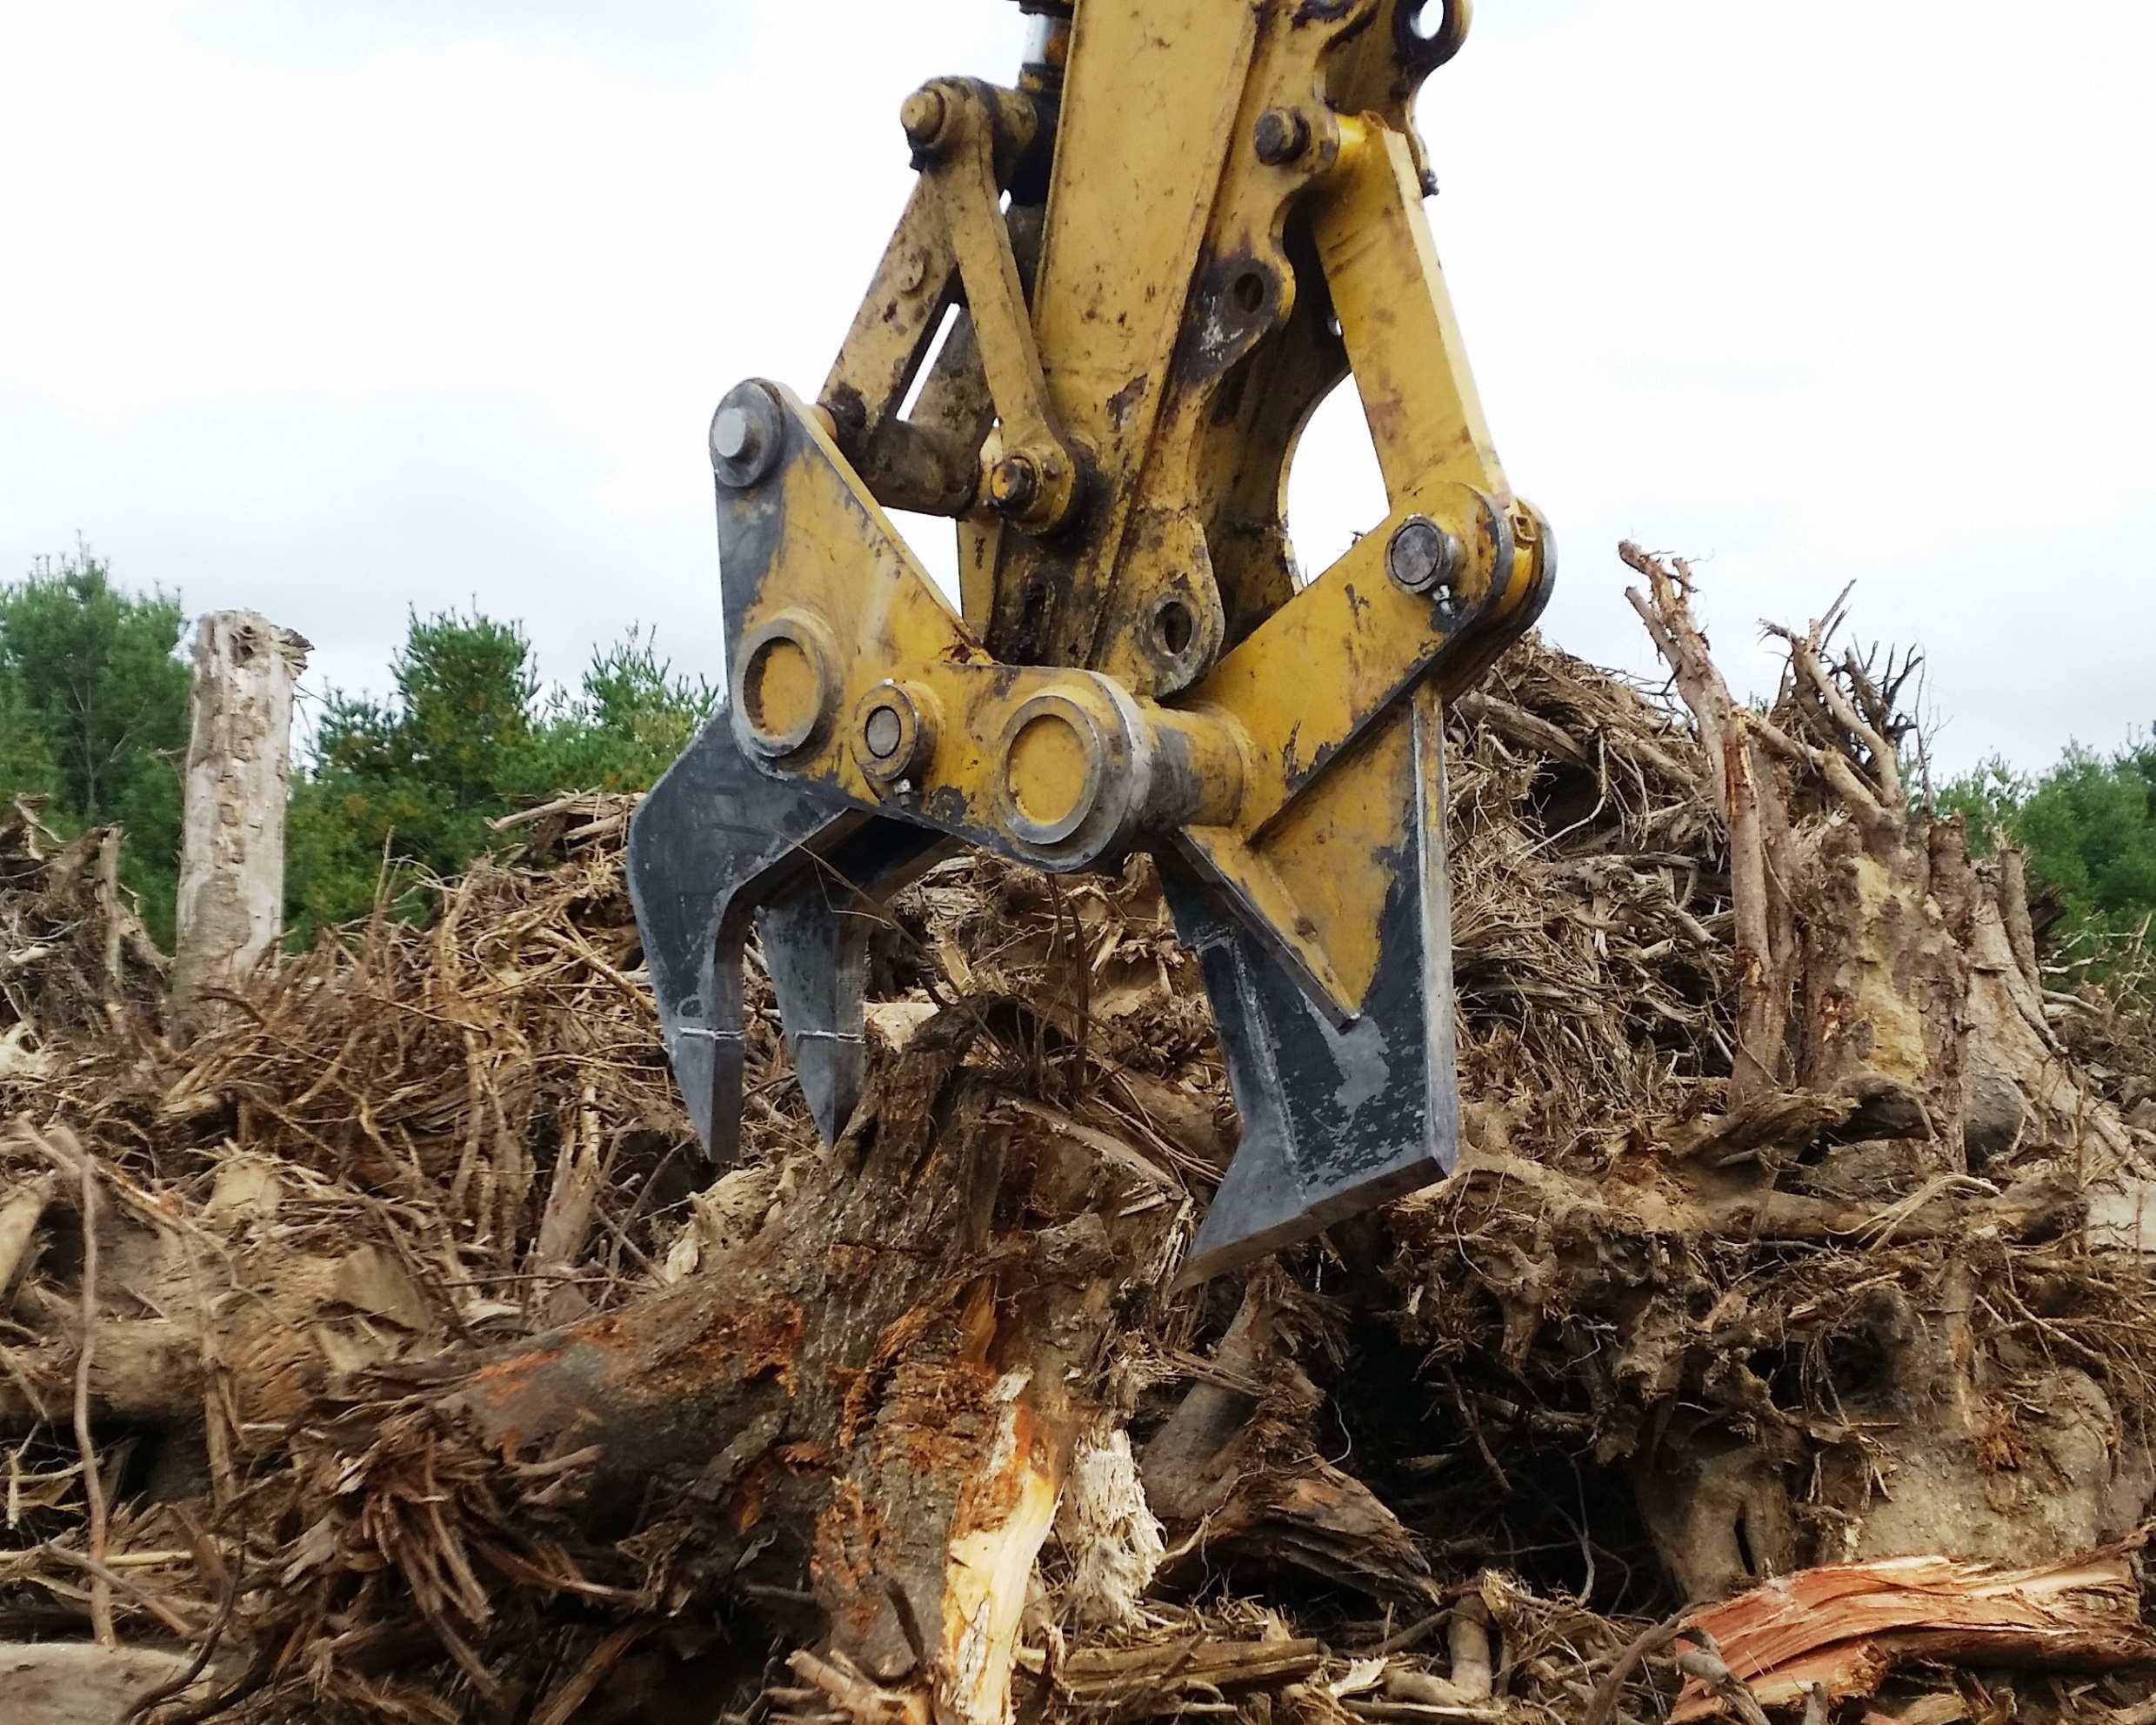 clearing out tree stumps and debris with Ransome stump harvester